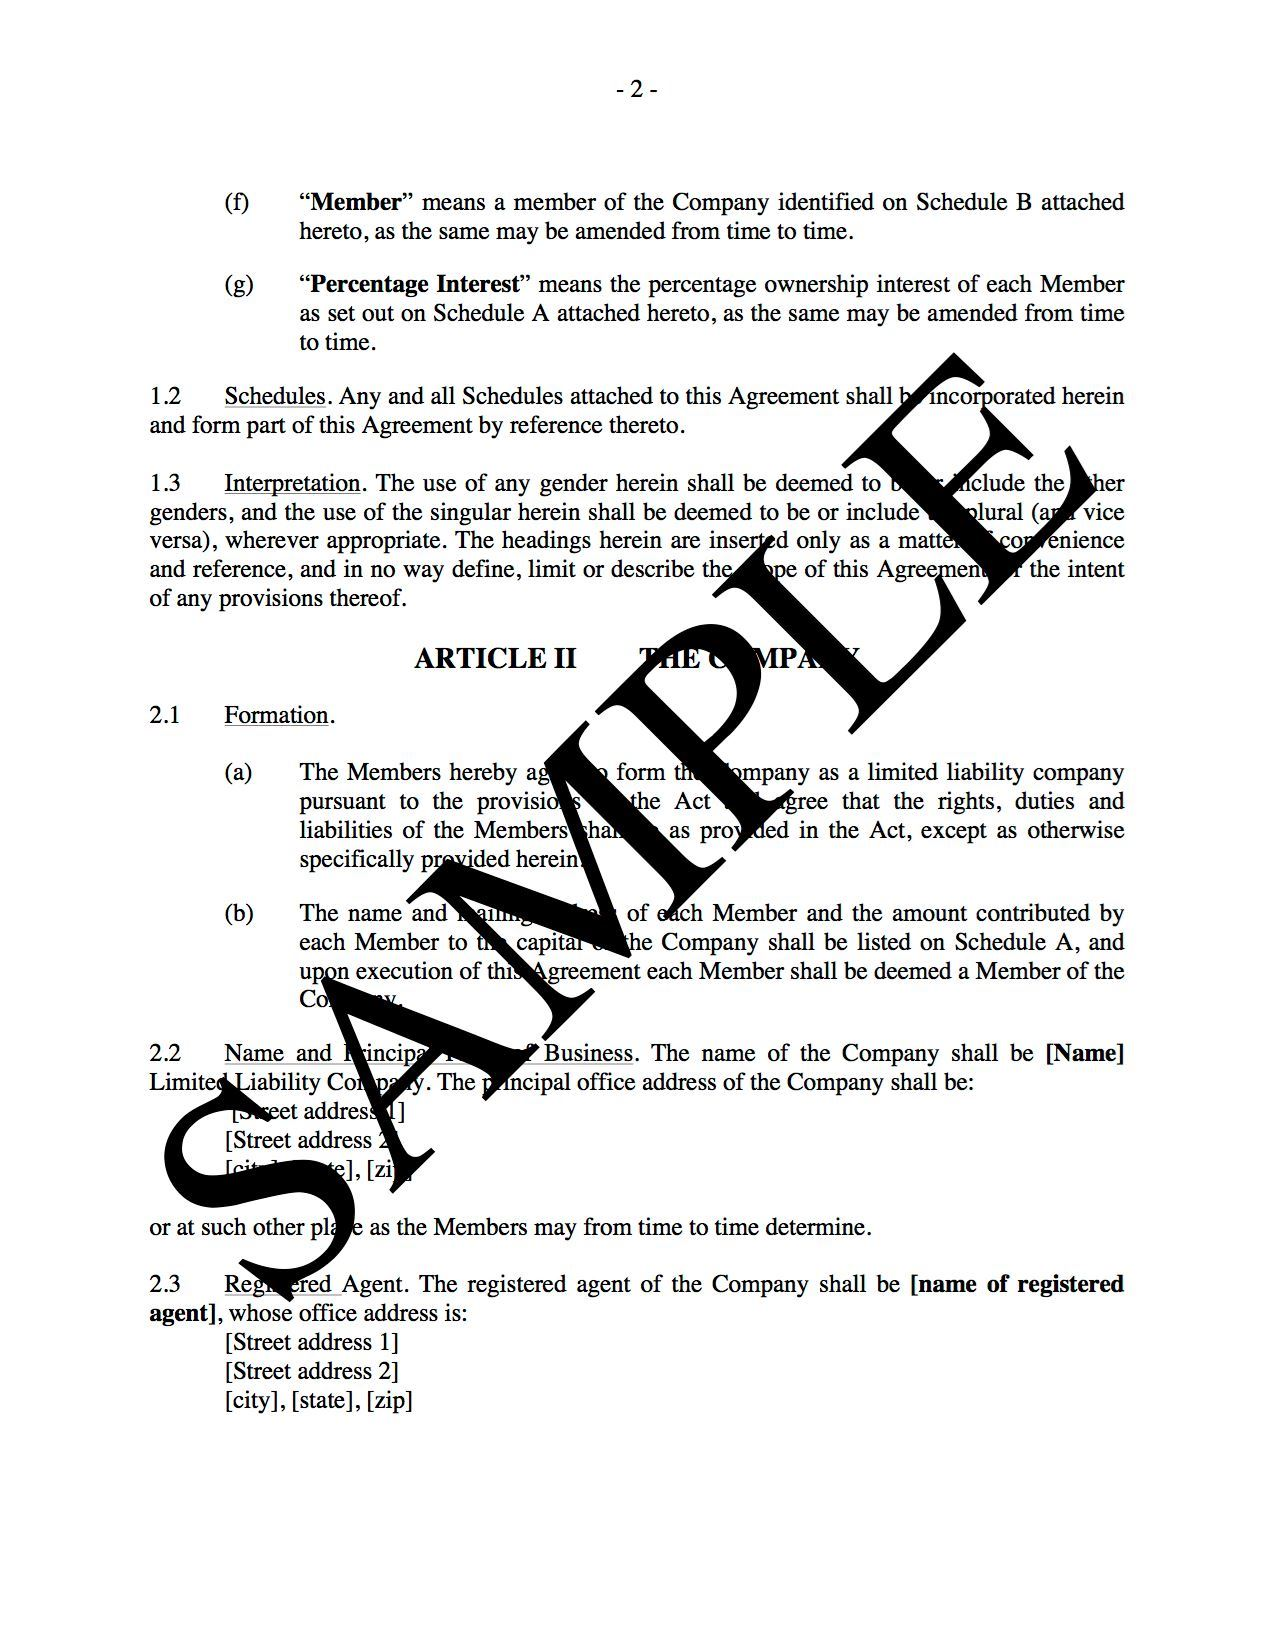 LLC Operating Agreement for Real Estate Development | Legal Forms ...